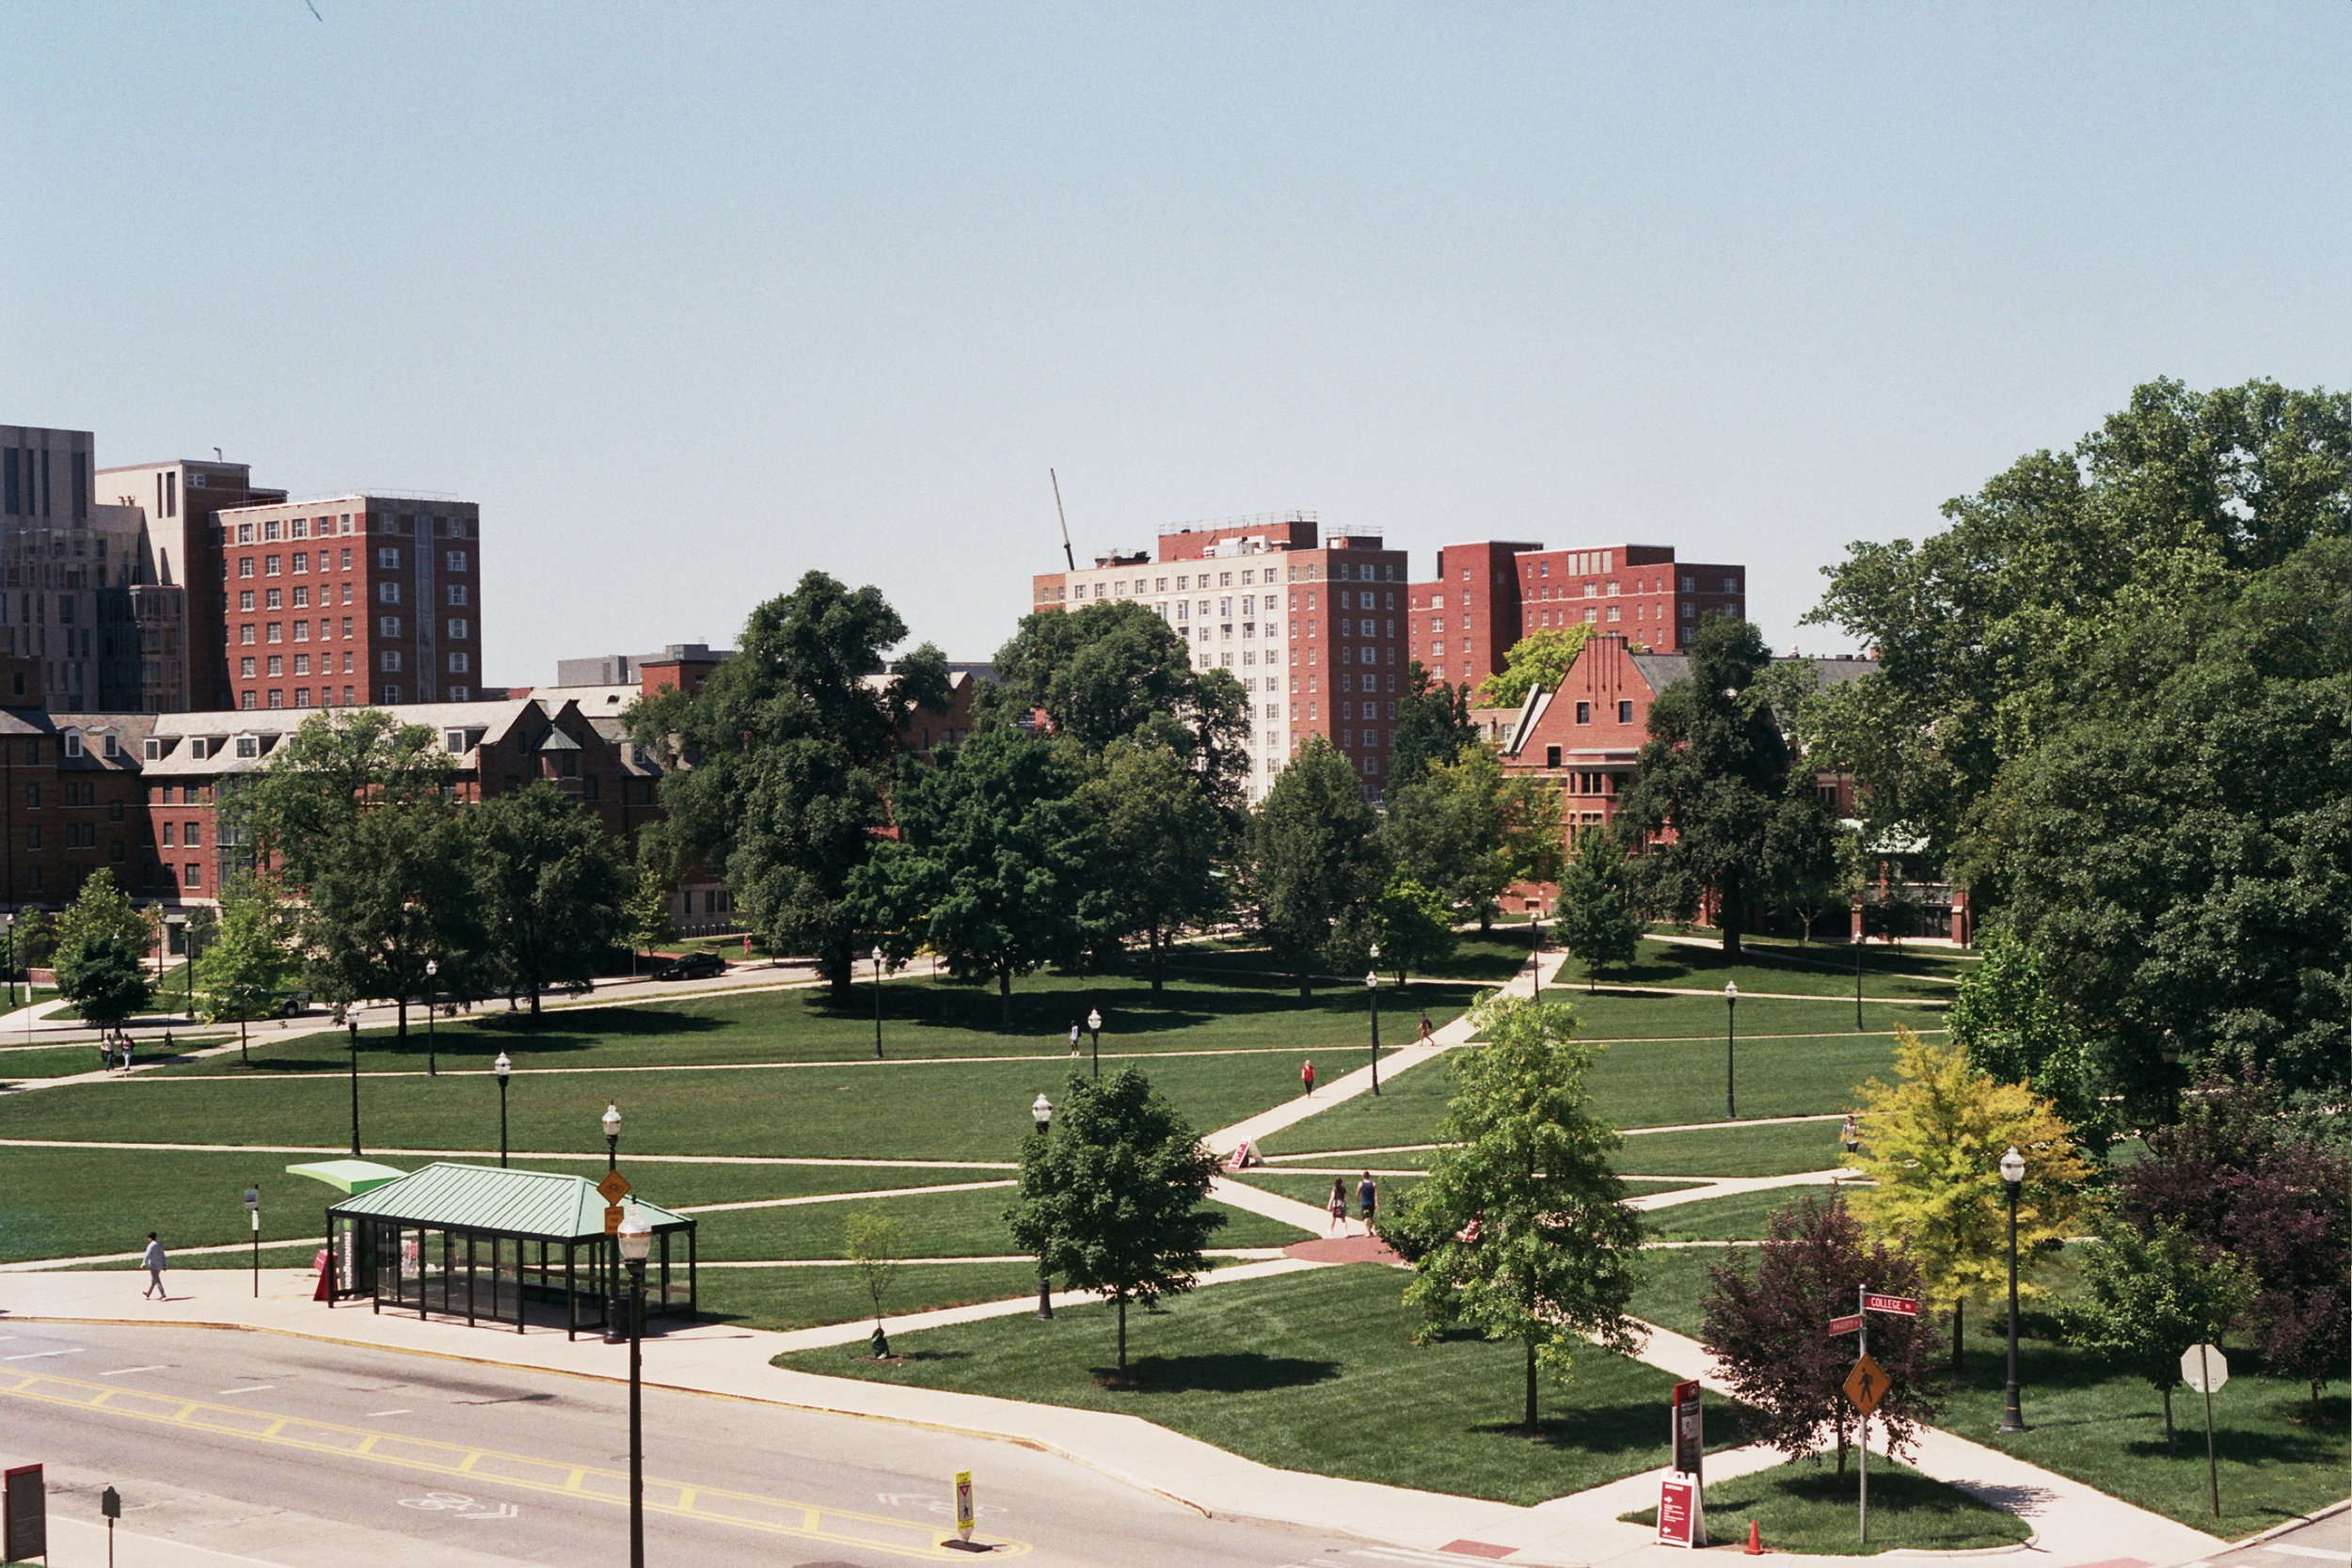 South Campus